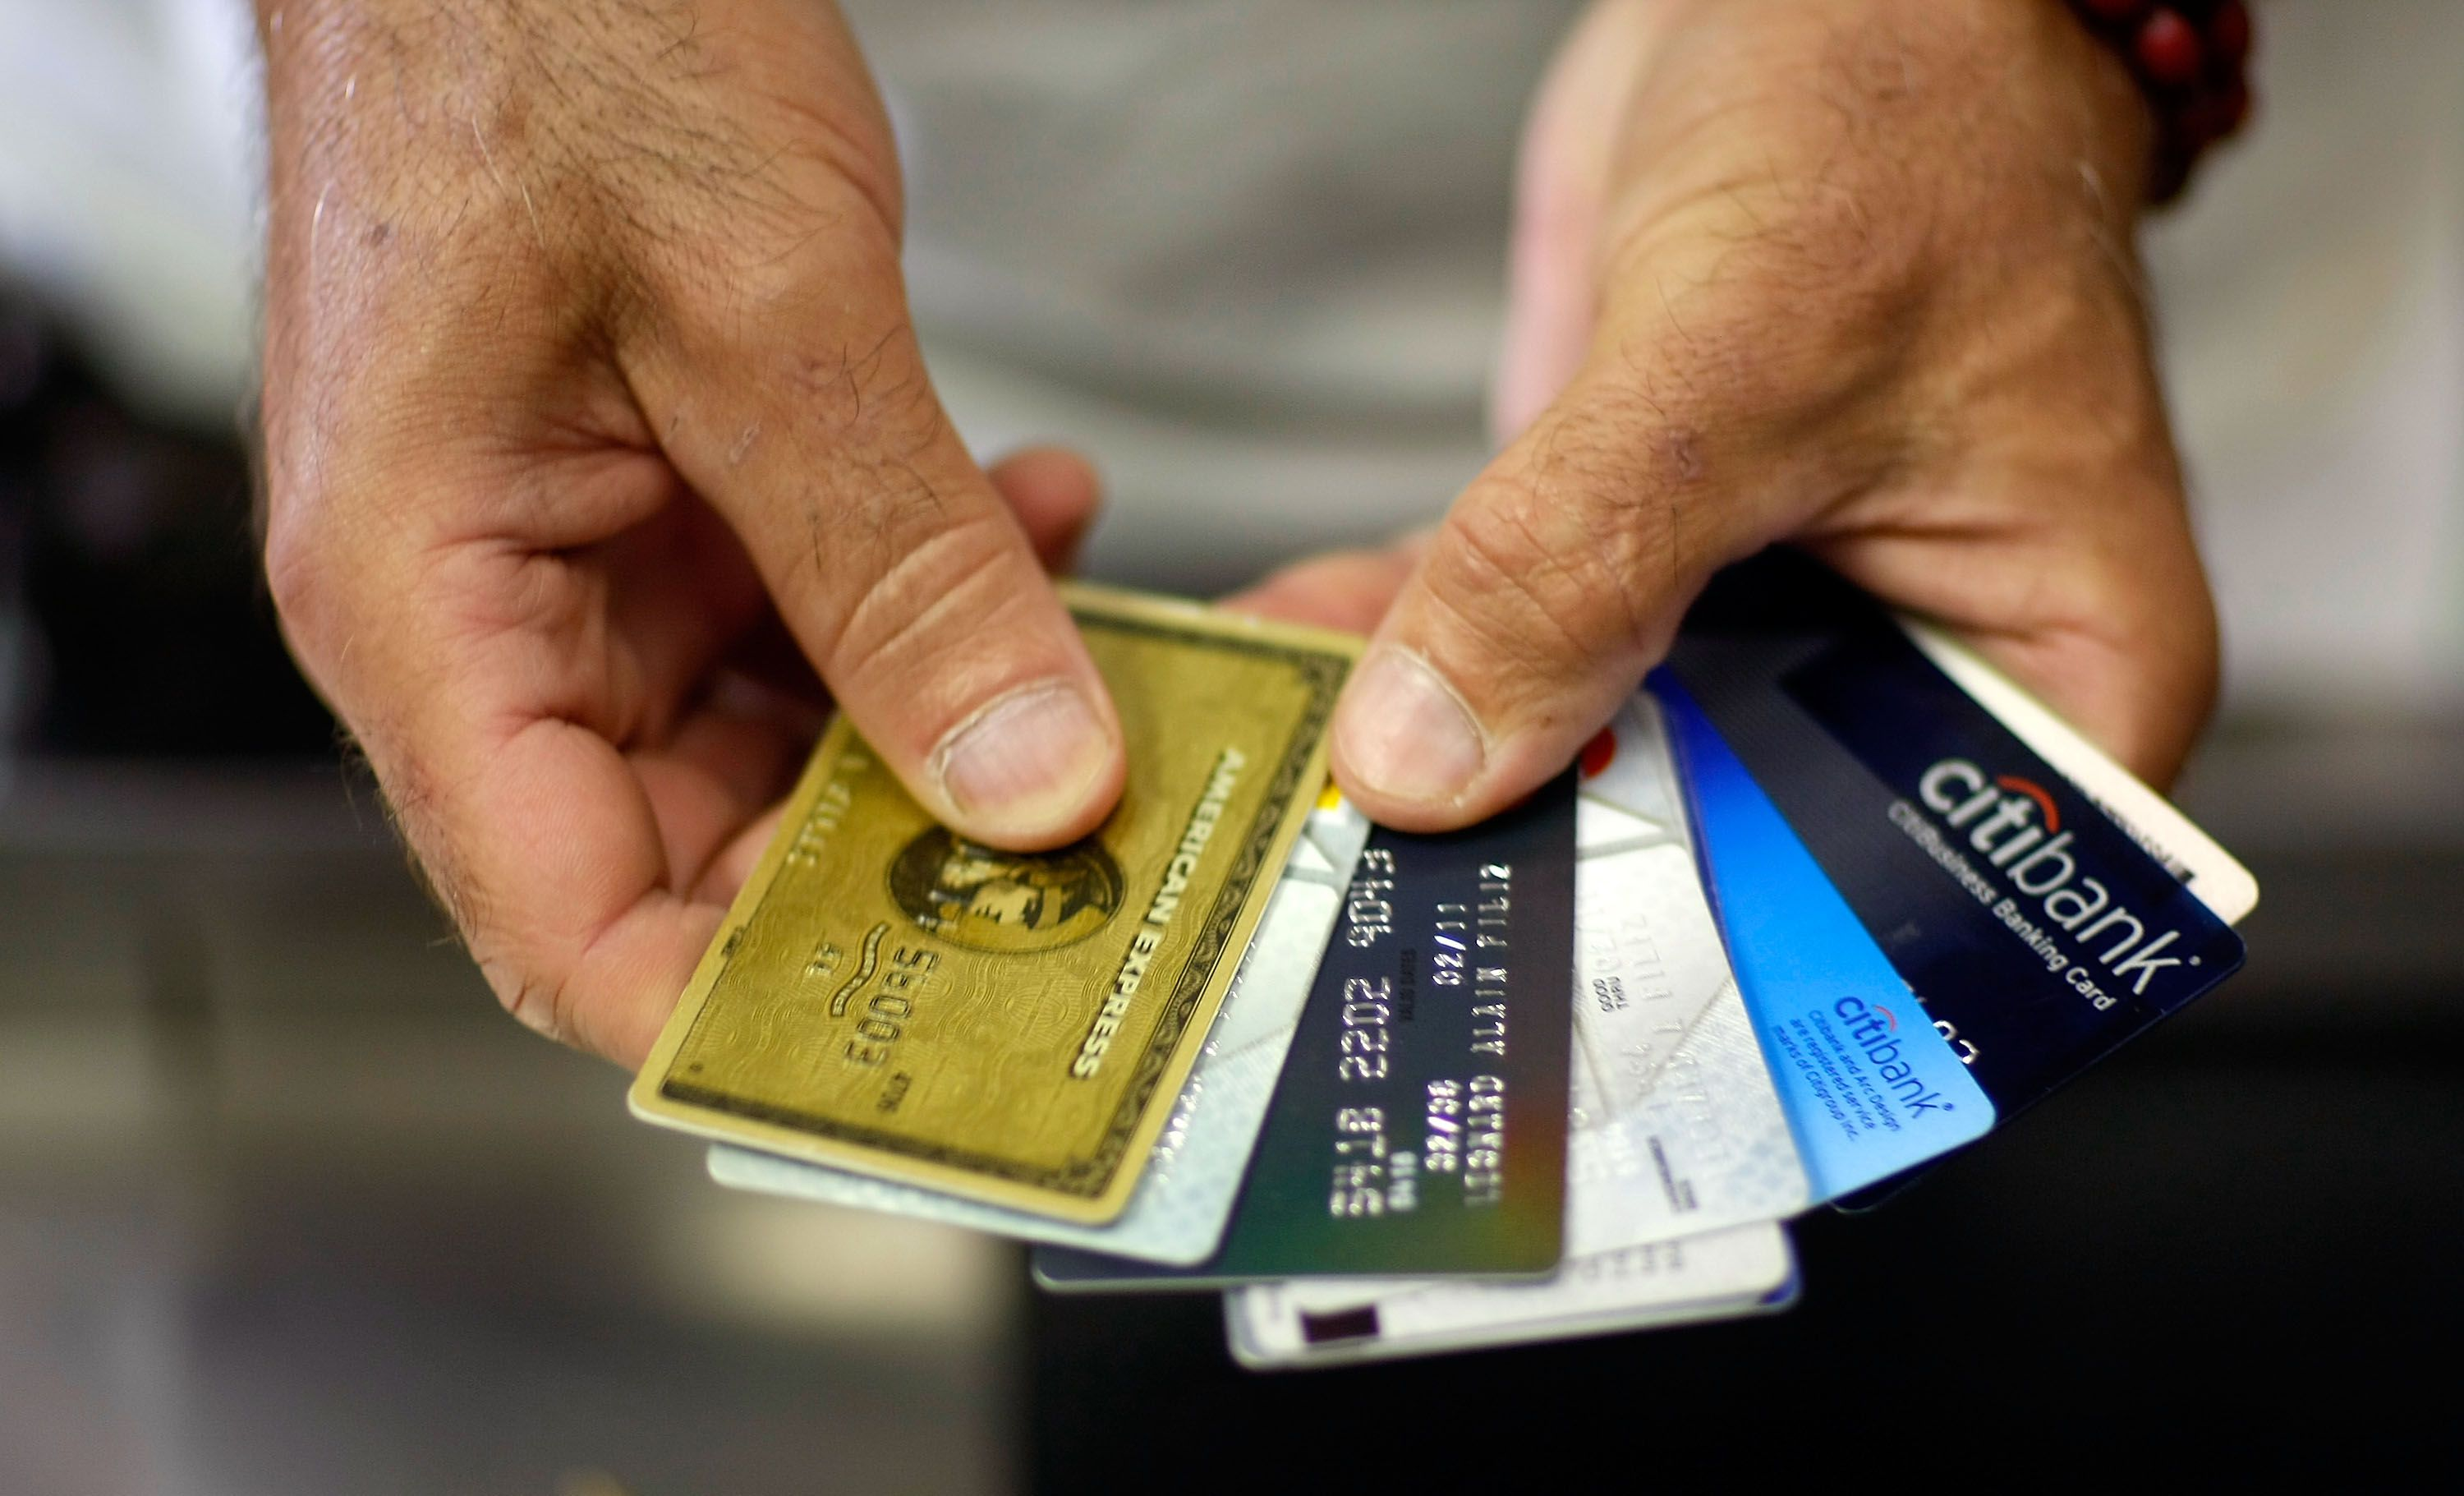 Find out How Often You Should Use Your Credit Card